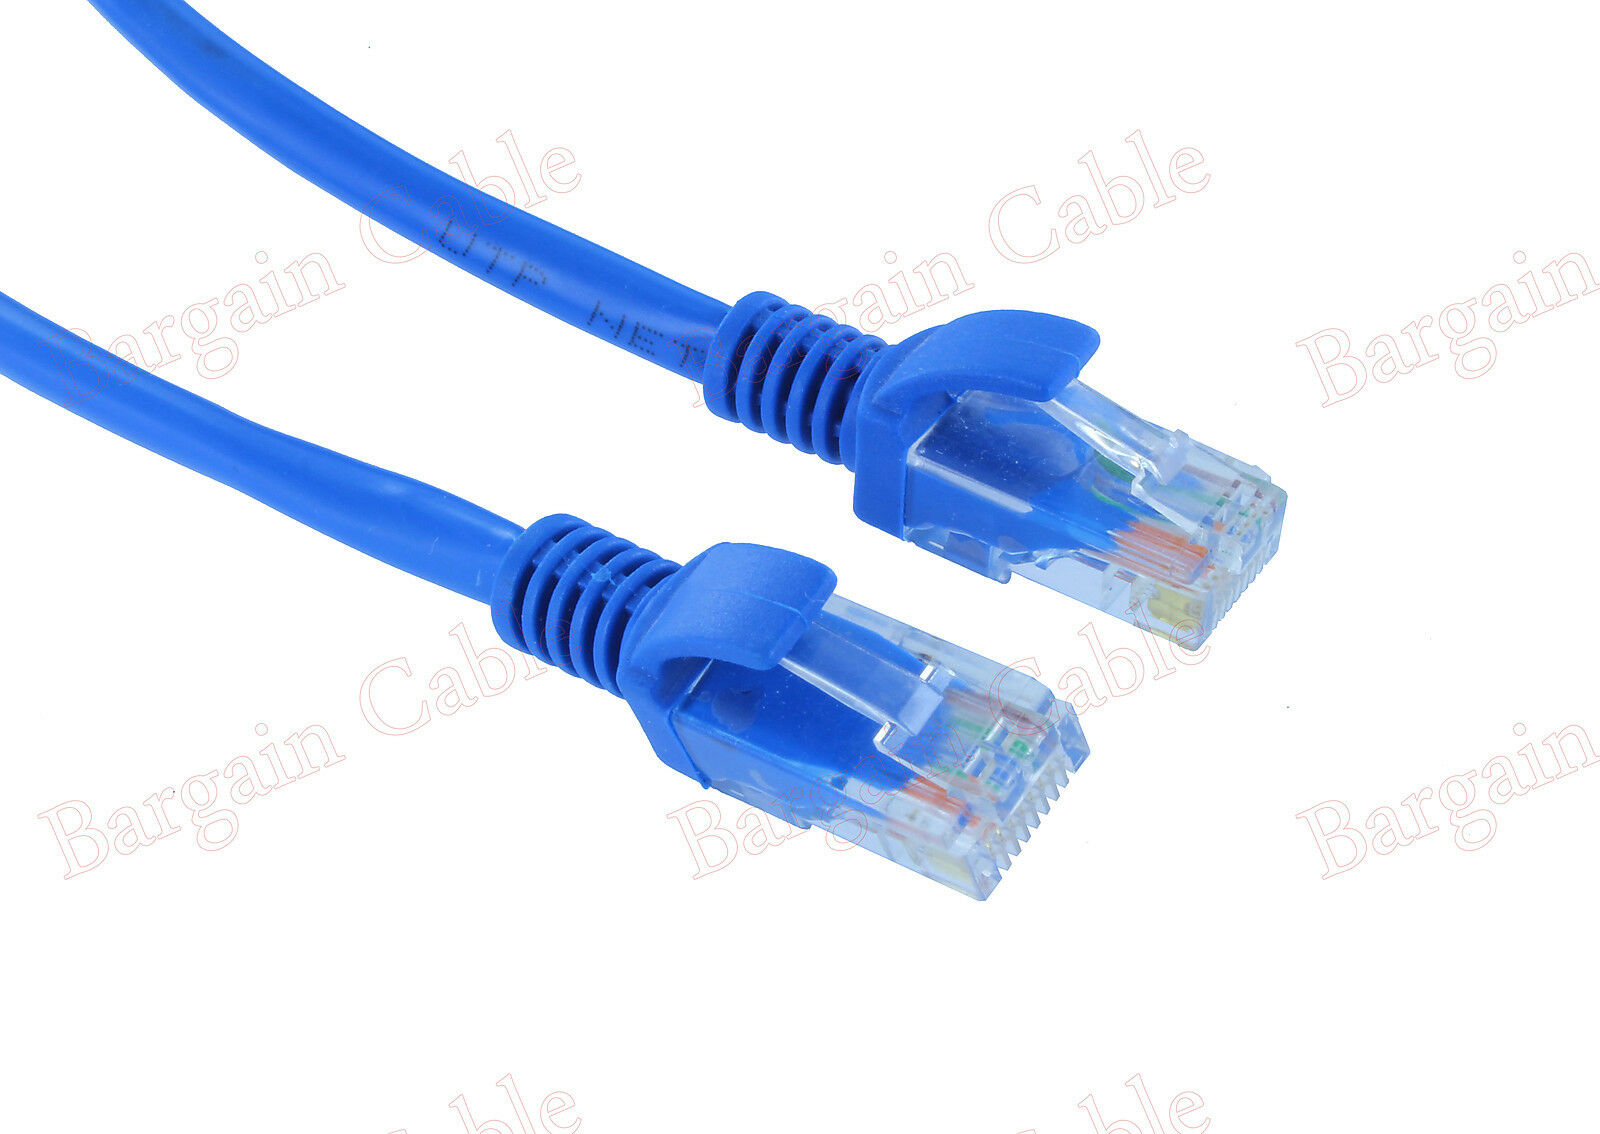 2 Pack 1ft Feet Rj45 Cat5e Lan Network Cable For Ethernet Router To Cat6 550mhz Standards Switch Modem Patch 1 Of 1free Shipping